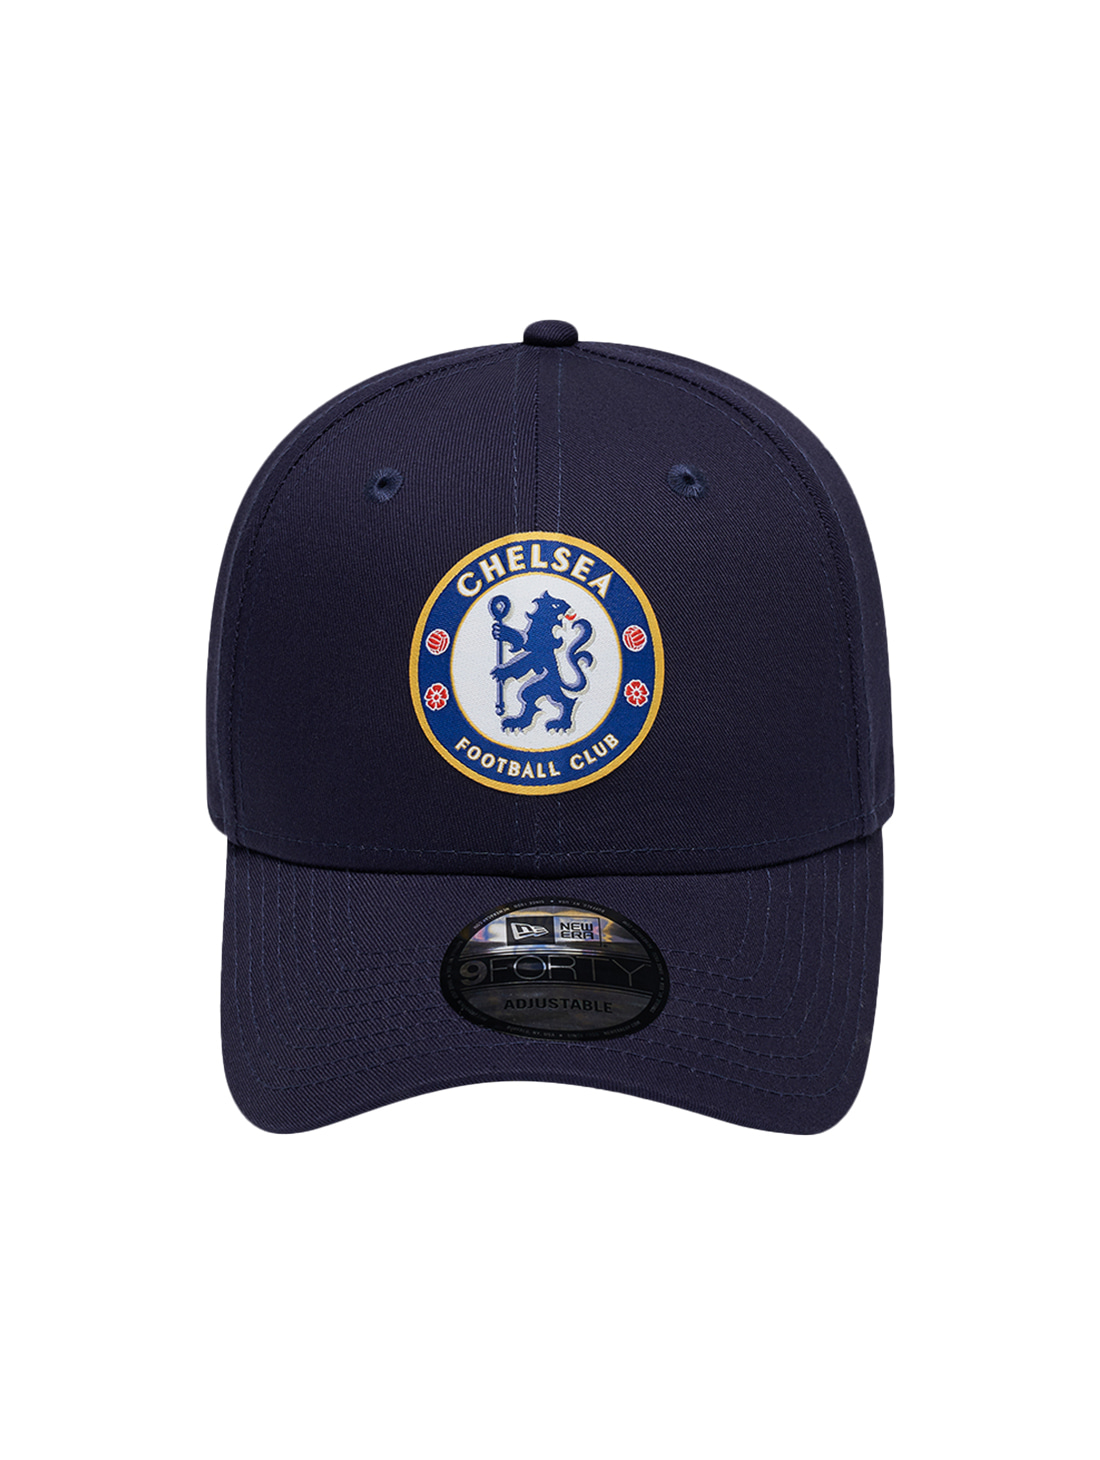 CHELSEA 940 BALL CAP - NAVY